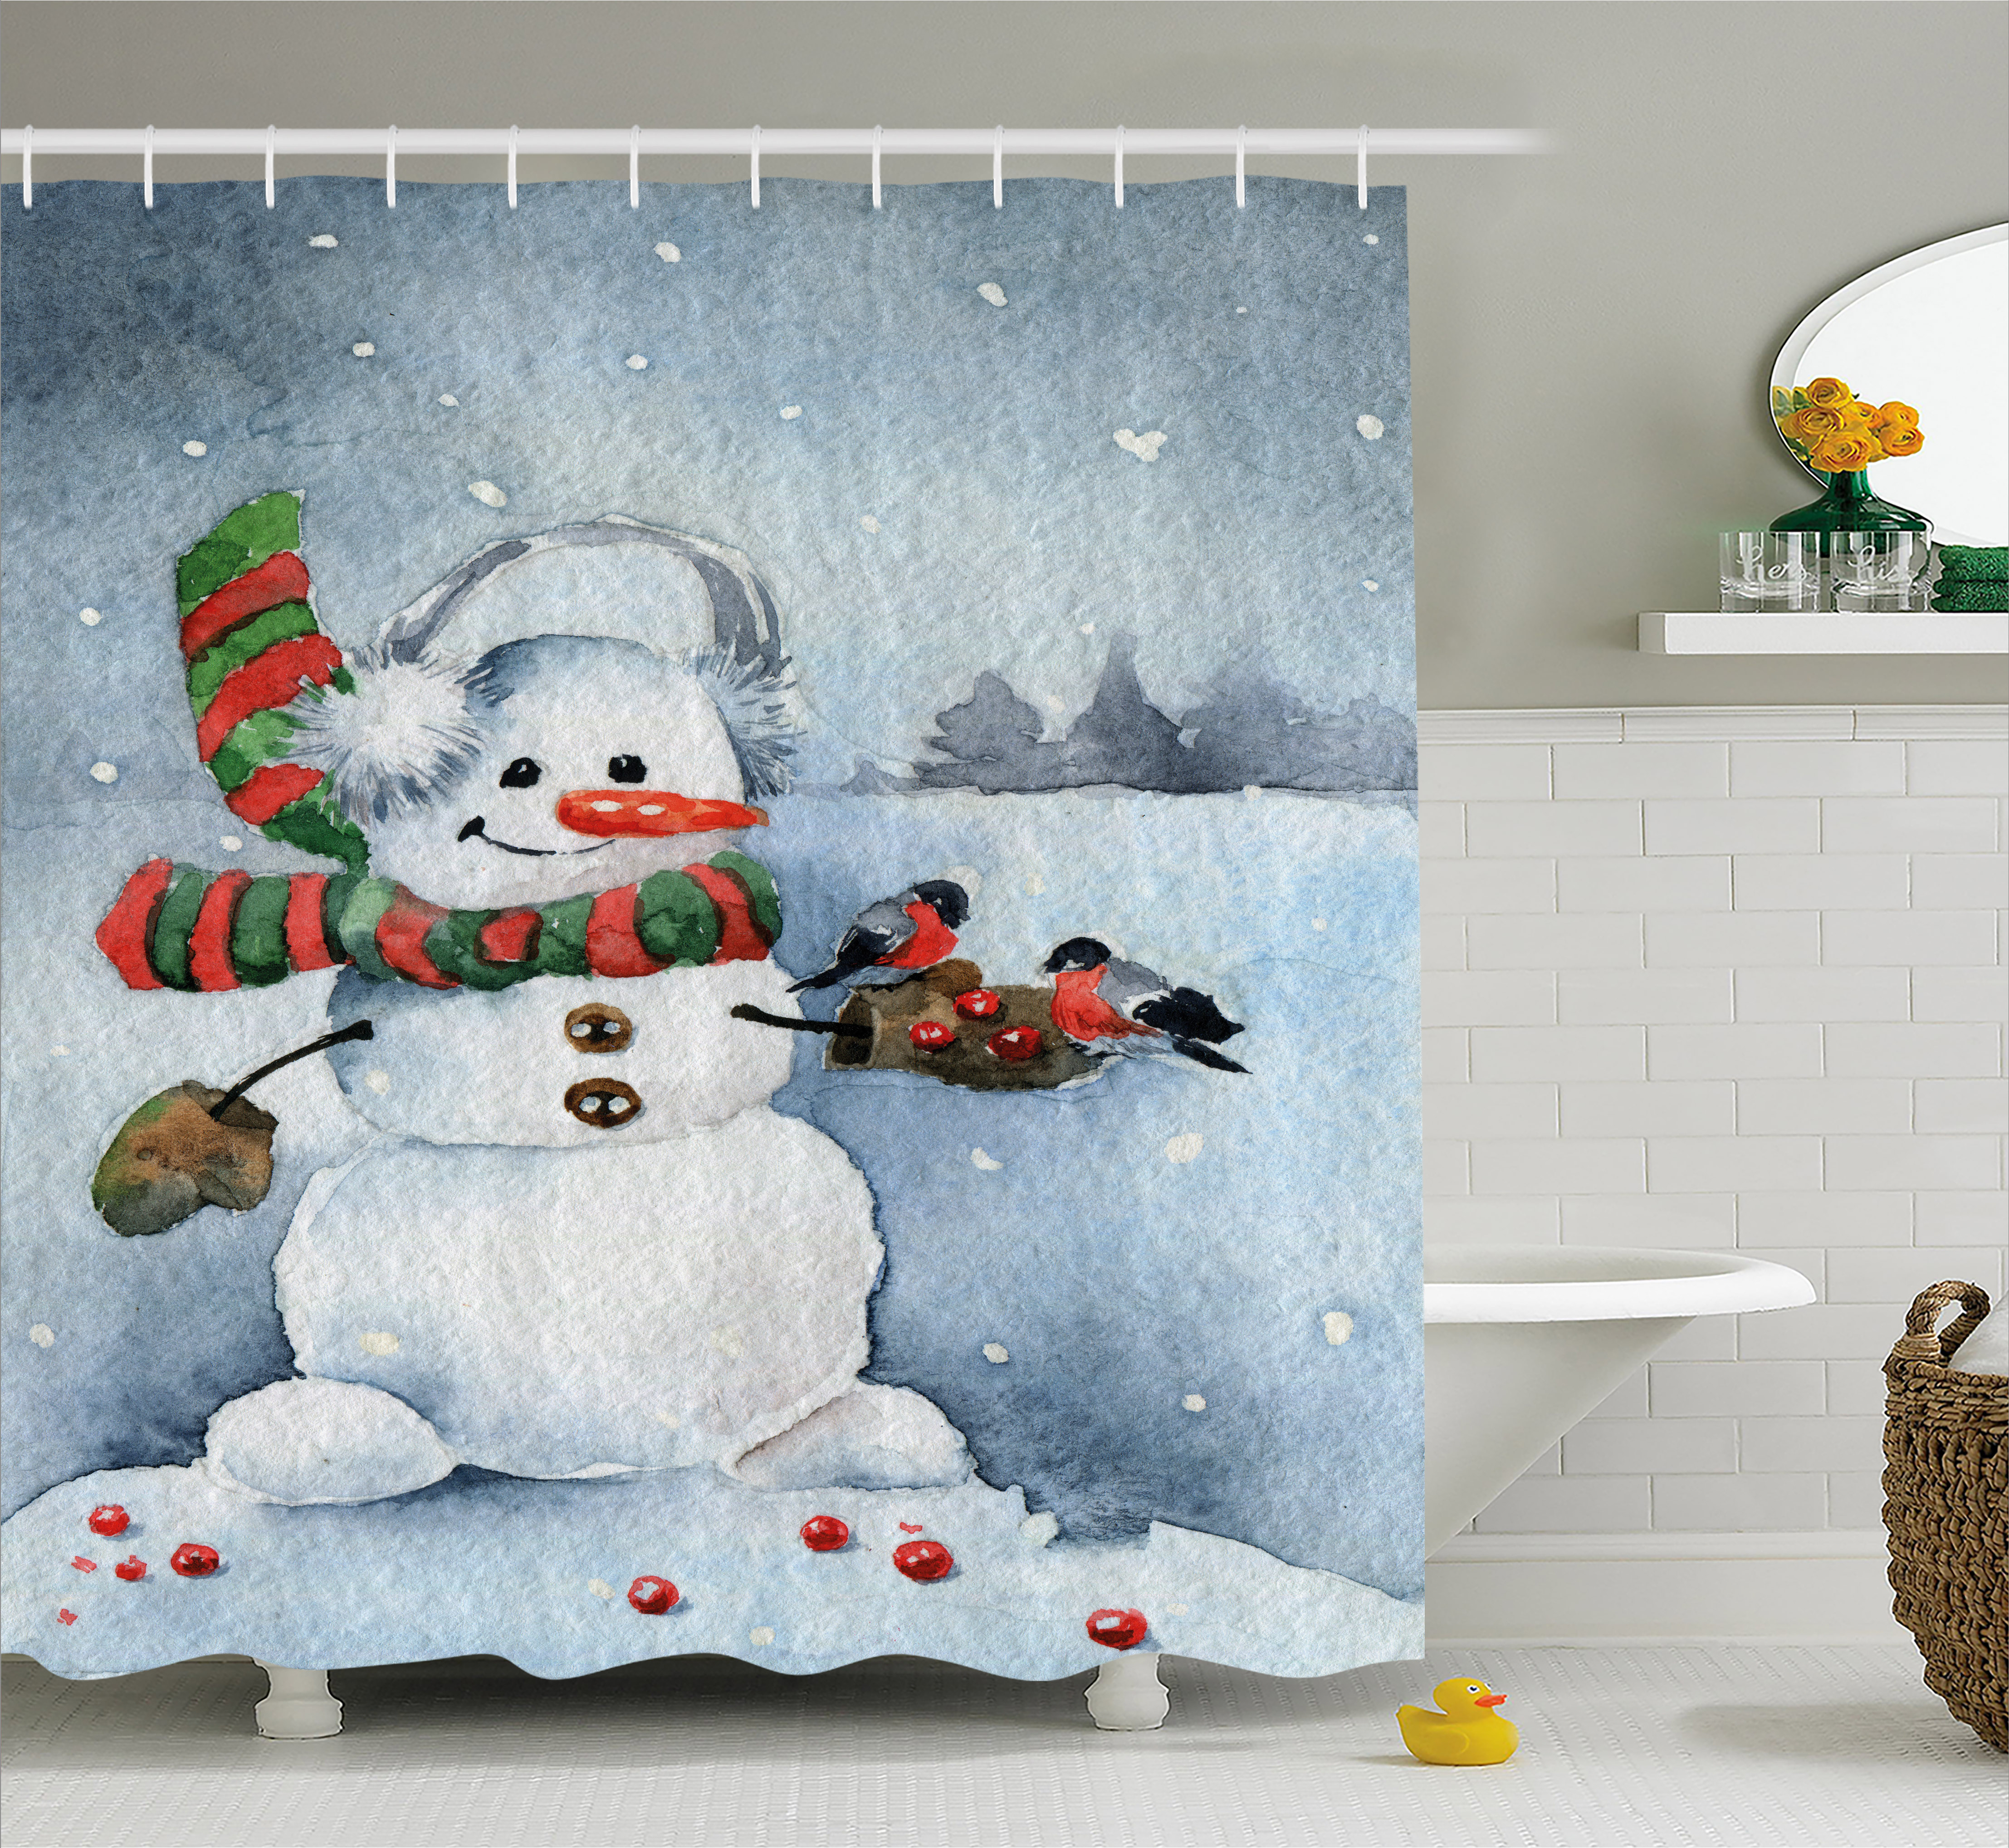 Snowman Bathroom Sets Snowman Shower Curtain Watercolor Style Snowfall Outdoors Merry Christmas Theme Winter Bullfinch Birds Fabric Bathroom Set With Hooks 69w X 70l